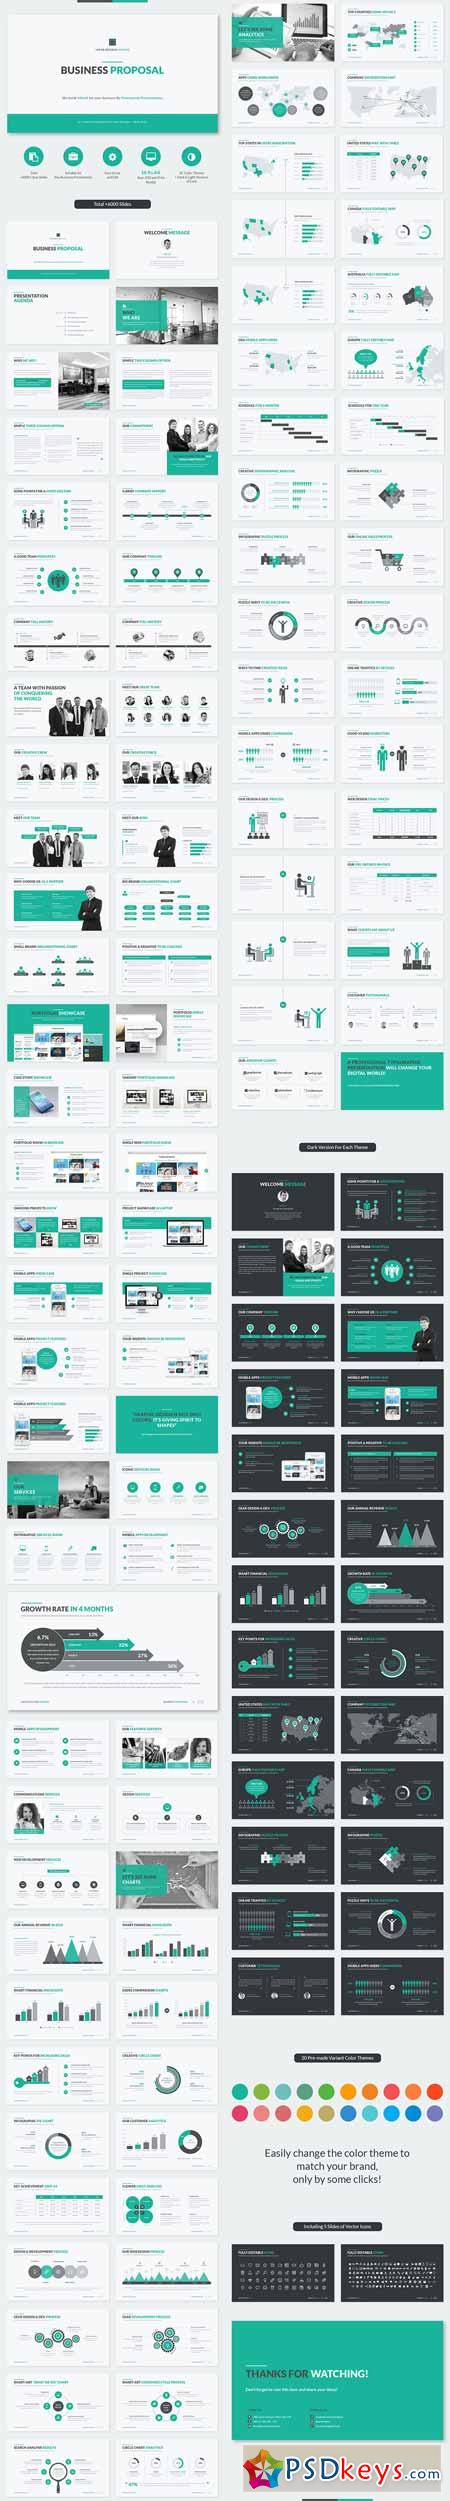 Business Proposal PowerPoint Template 11833931  Free Business Proposal Template Download